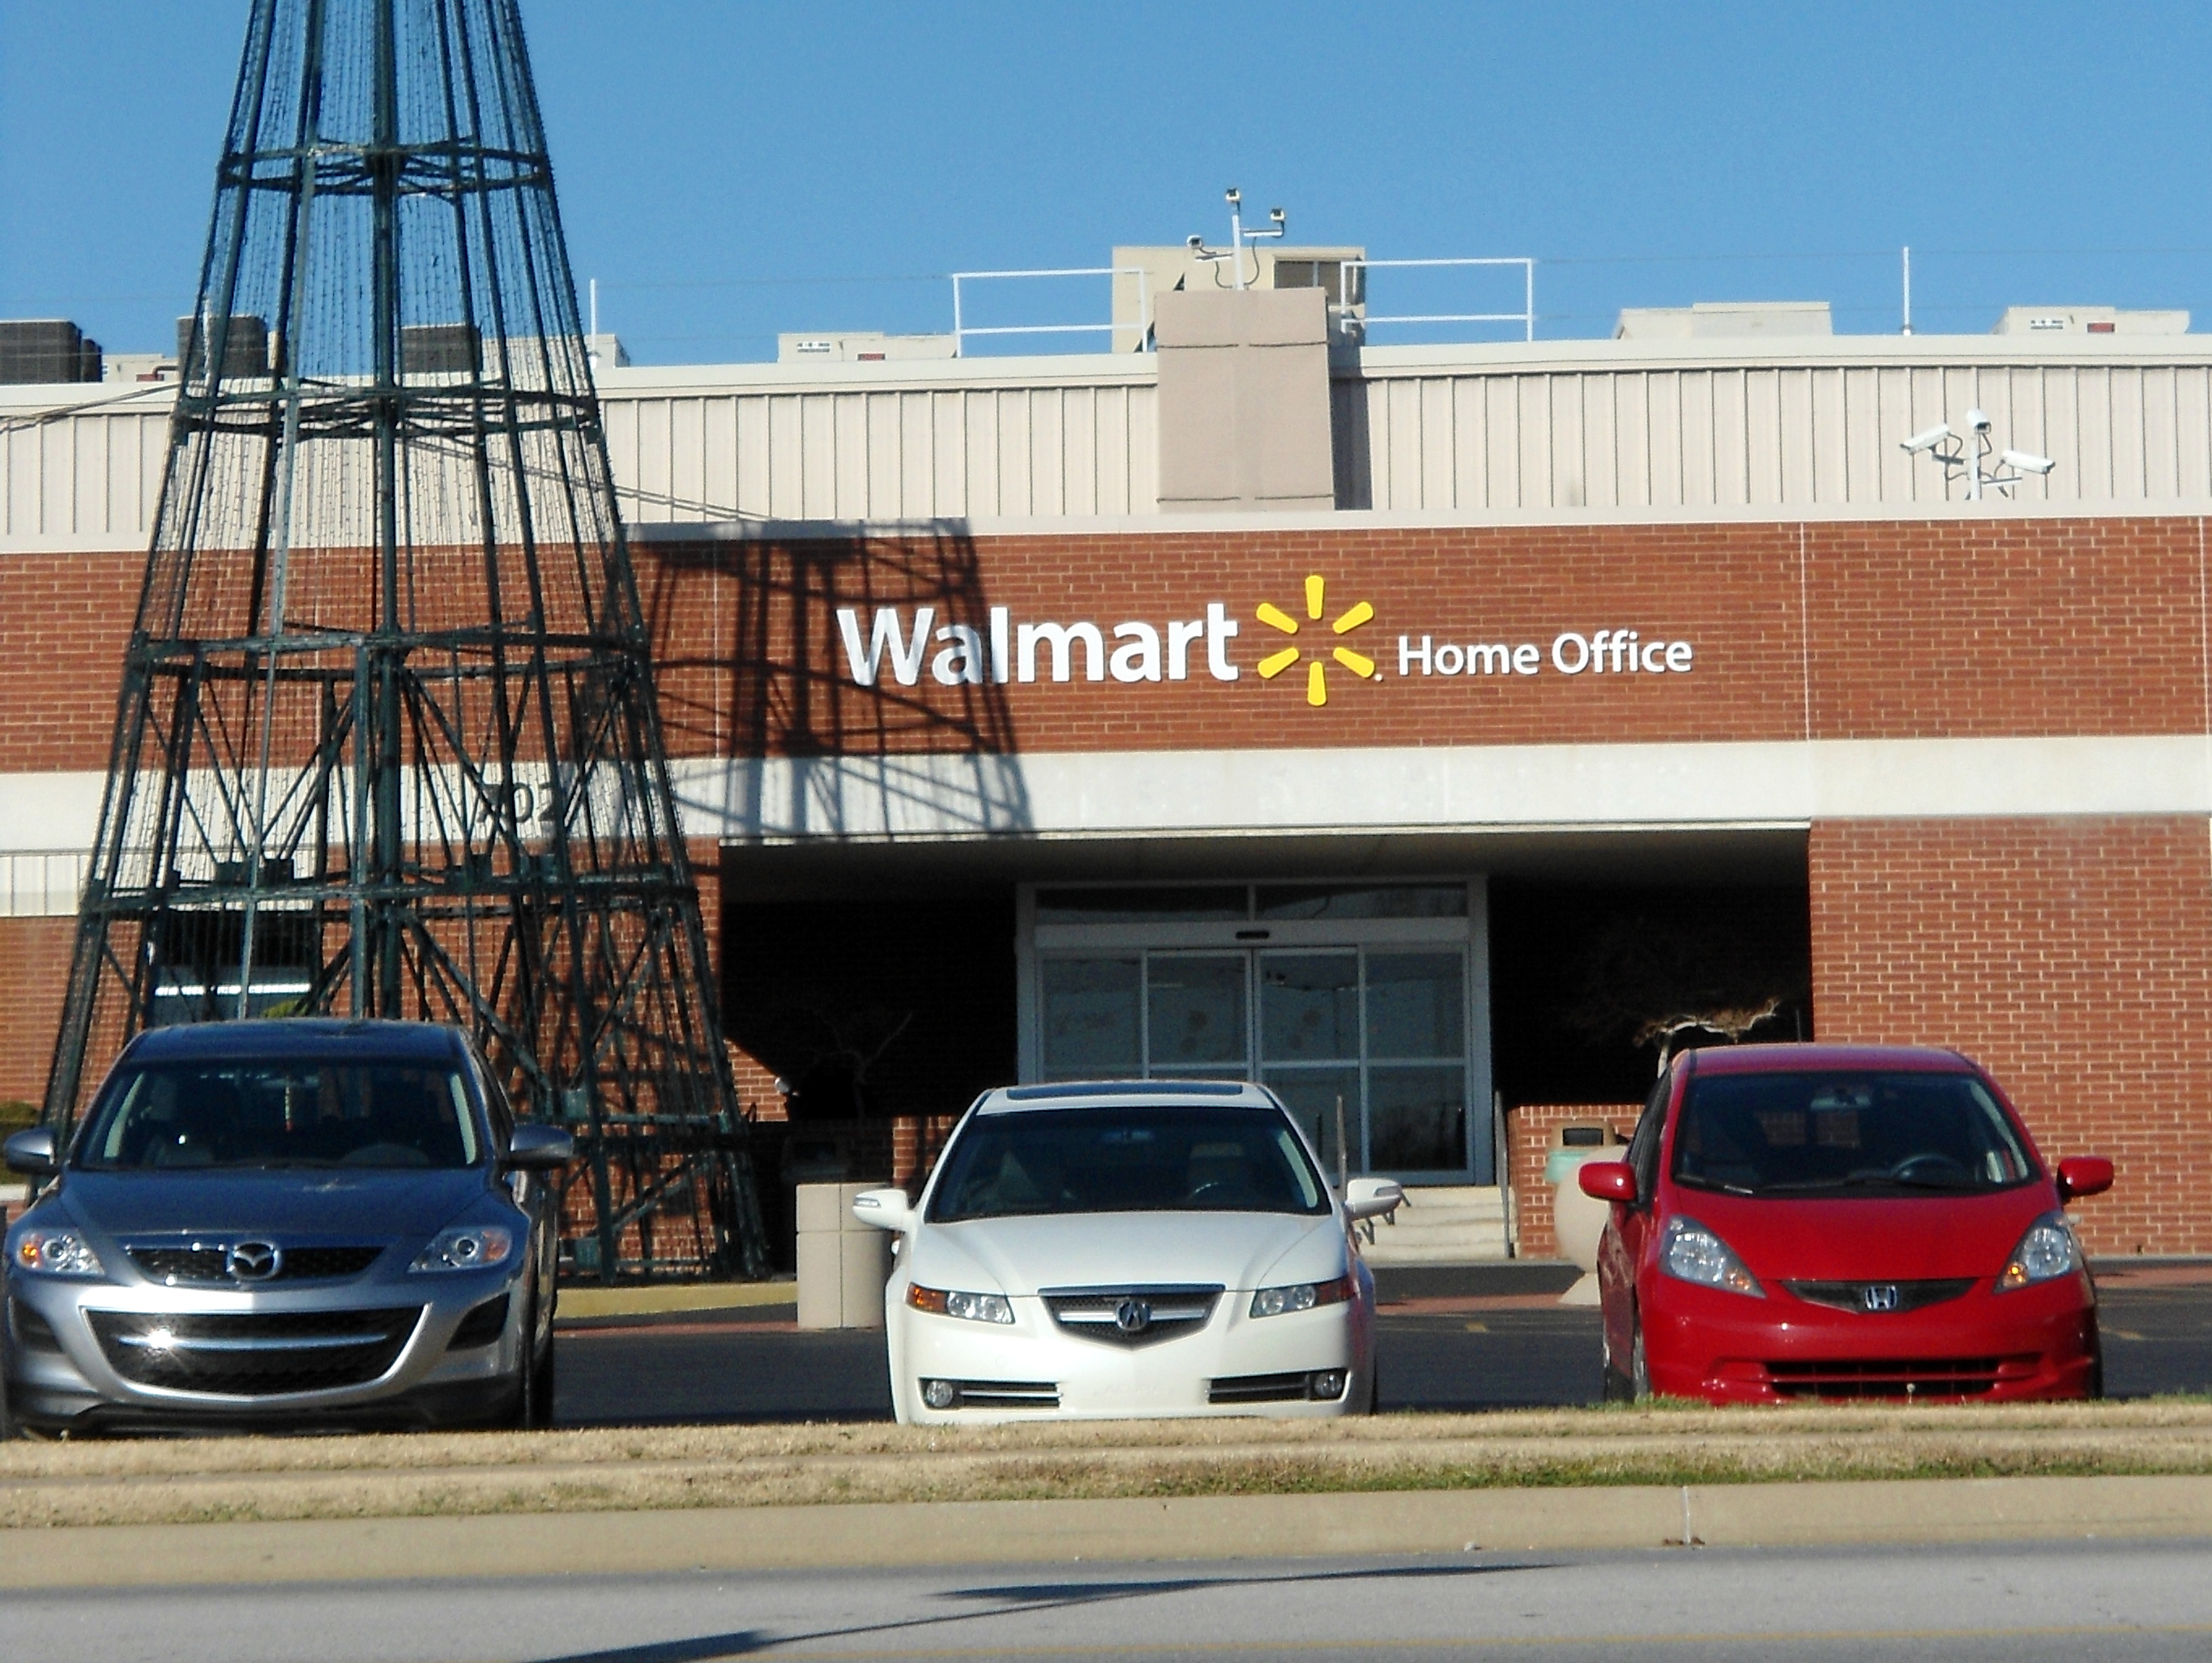 finding work isnt difficult in the home of walmart inc in fact walmart employs the highest number of residents in bentonville